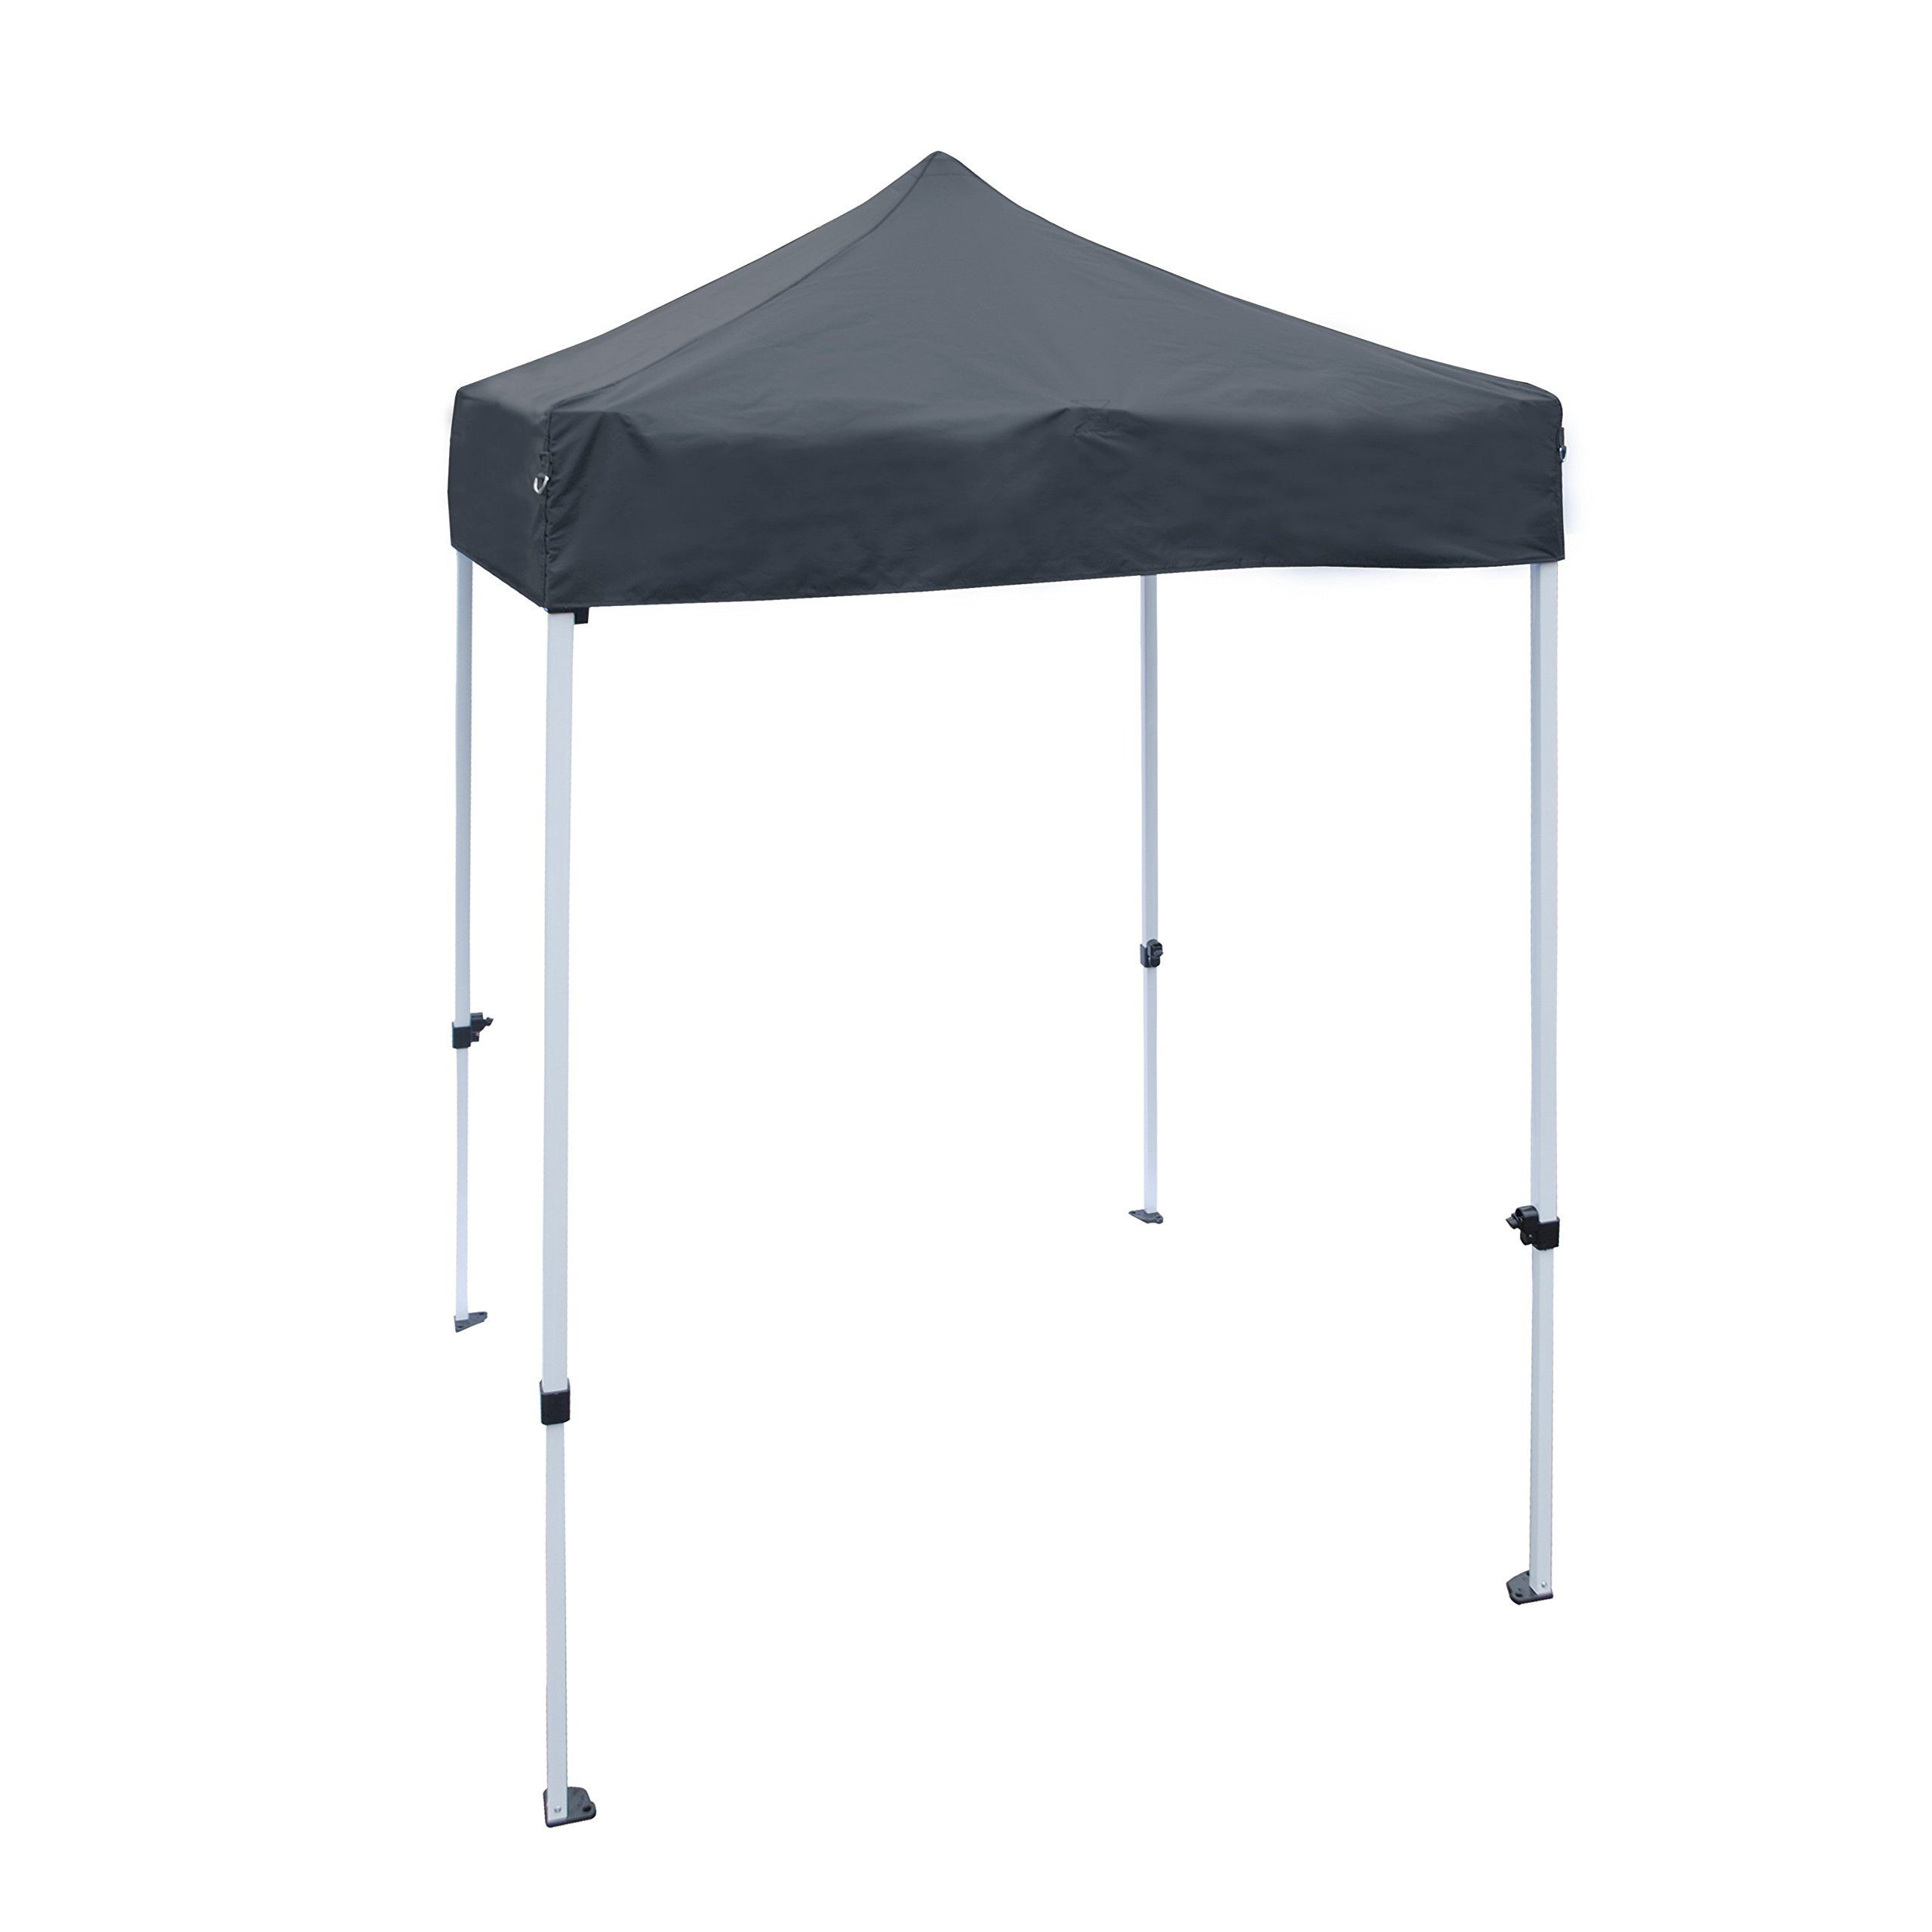 ALEKO GZF5X5BK Foldable Popup Polyester Gazebo Canopy Patio Coffee Shelter 5 x 5 Feet Black